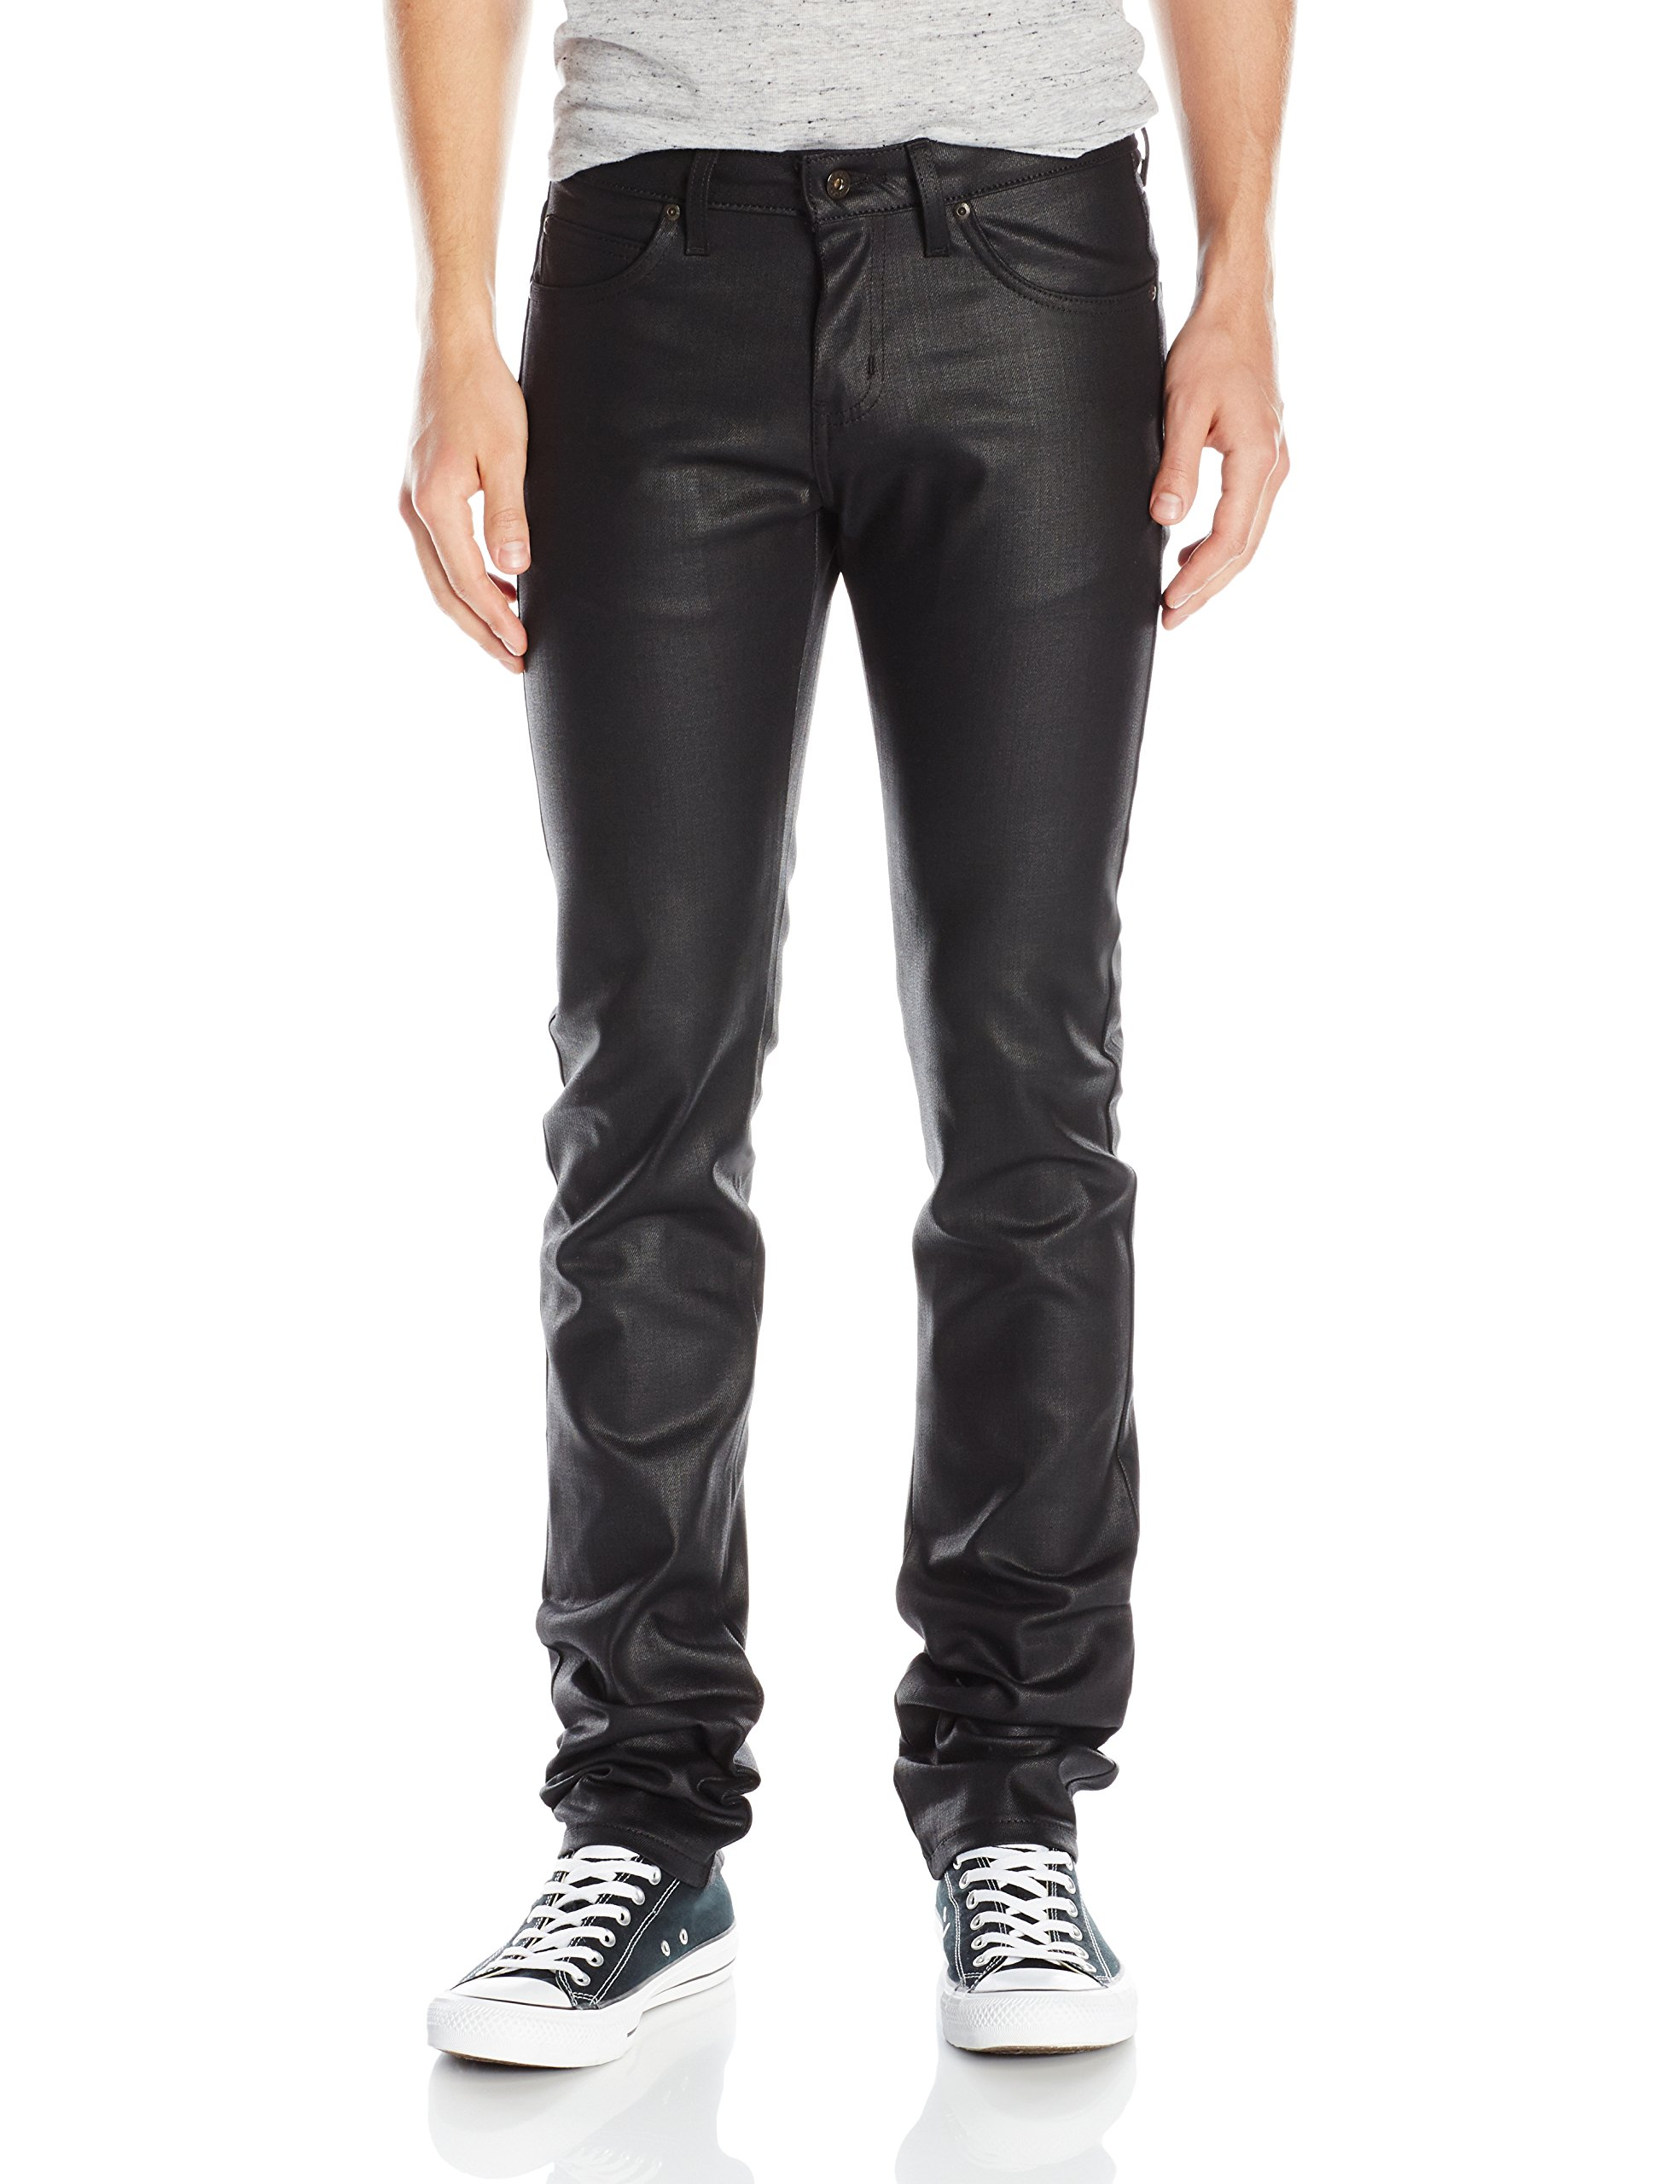 Naked & Famous Denim Men's SkinnyGuy Waxed Stretch Jeans, Black, 29